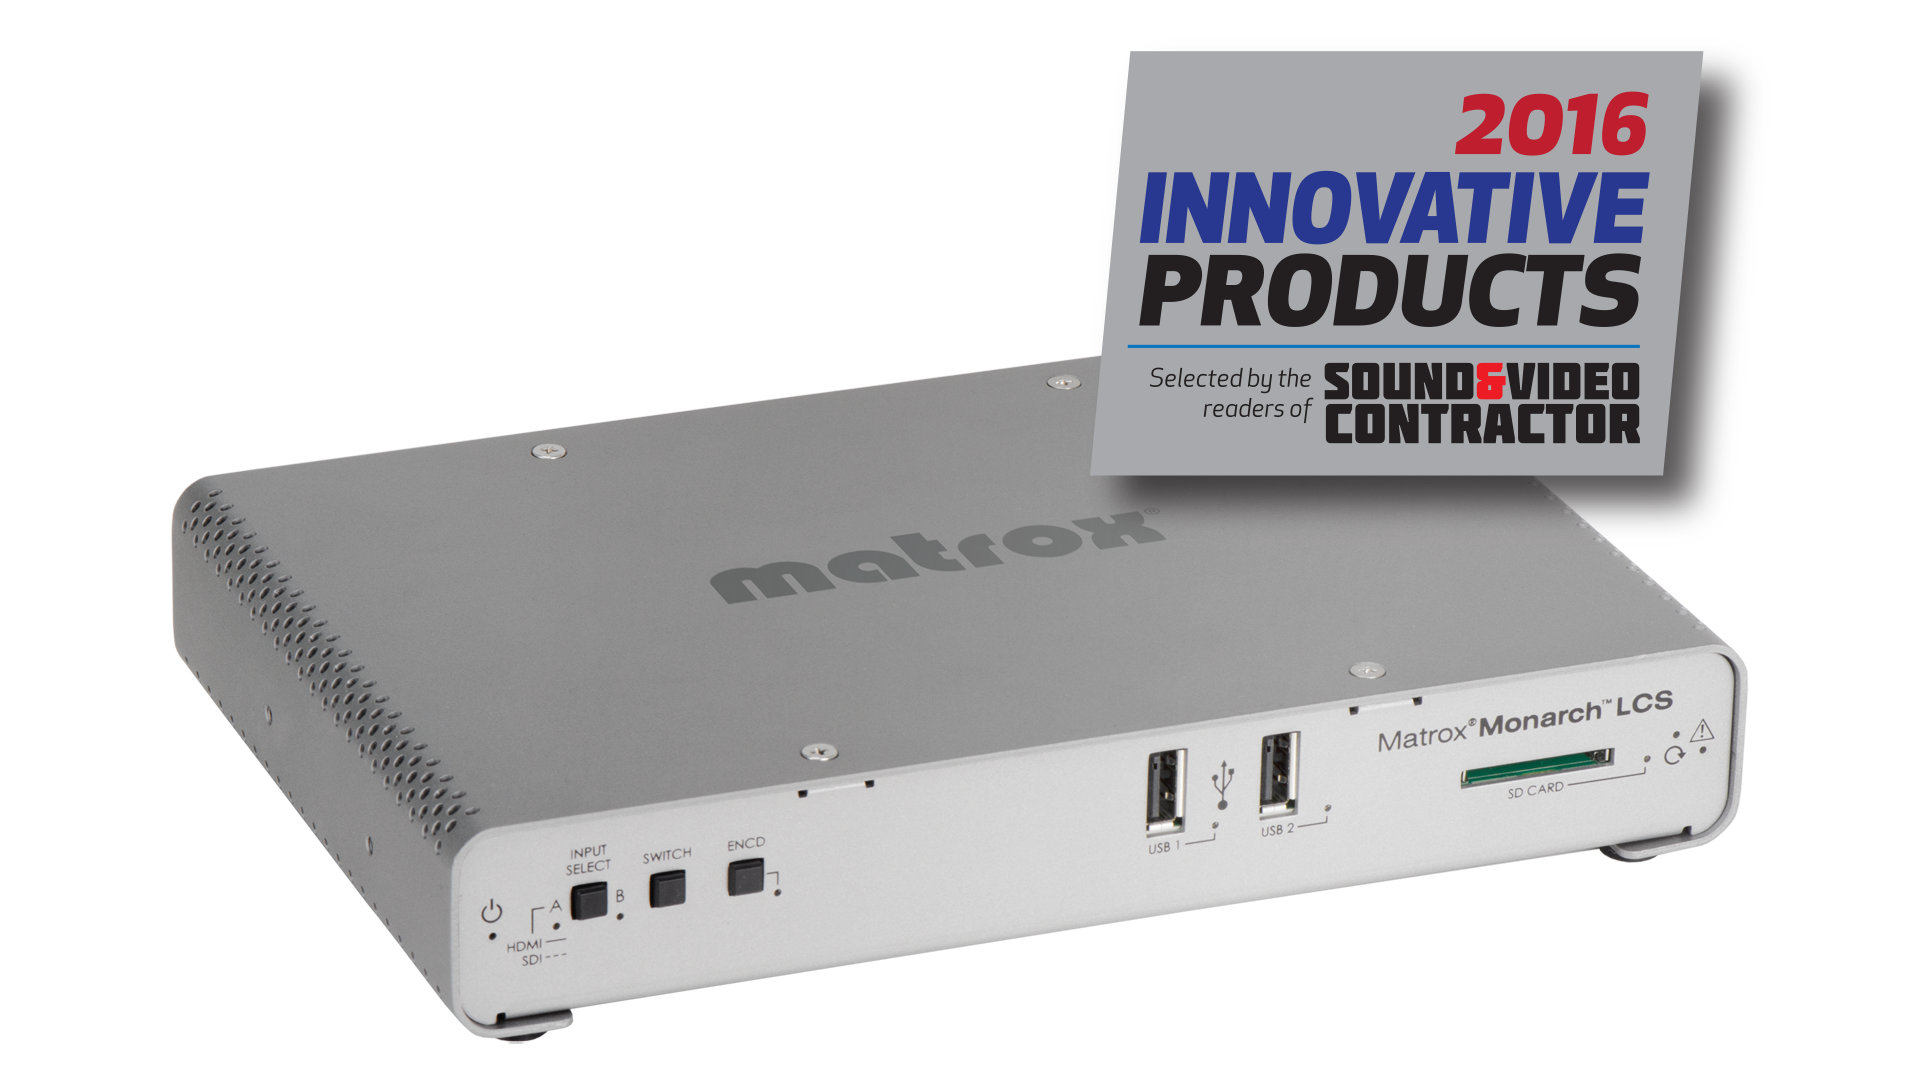 Matrox Monarch LCS recognized as one of 2016's Innovative Products